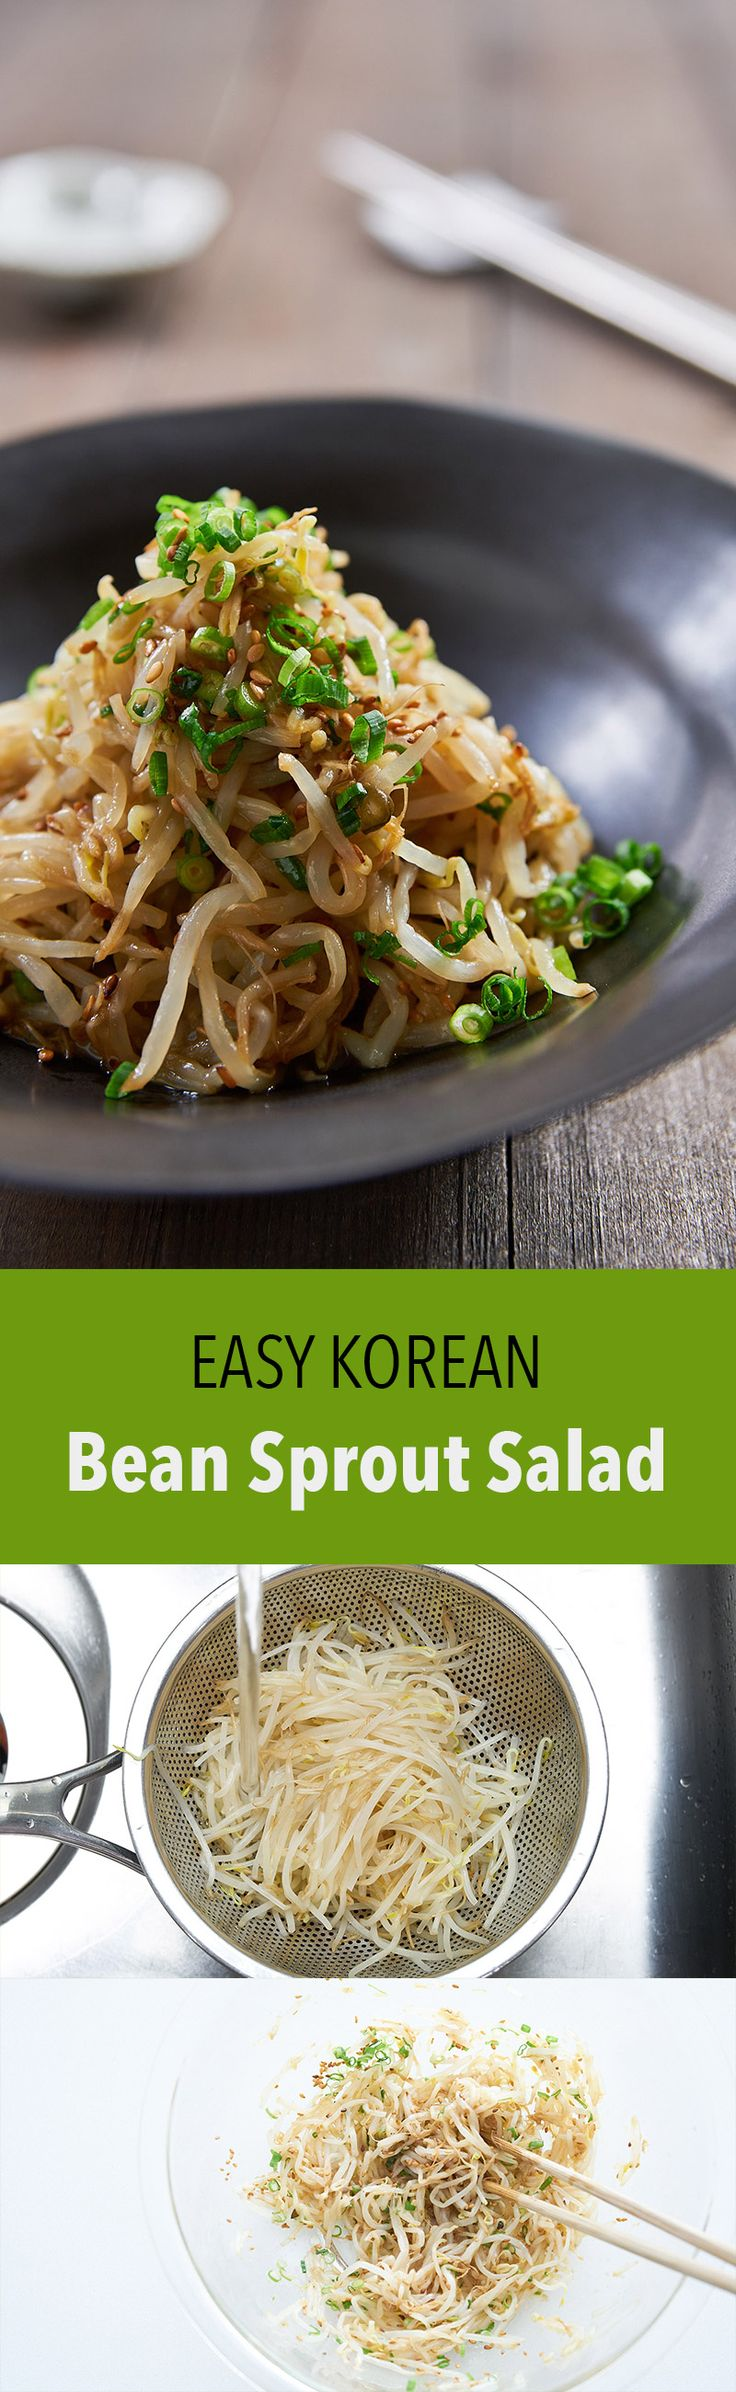 My tips for making the best Sukju Namul (숙주나물 무침), an easy Korean bean sprout salad that comes together from a handful of basic ingredients in just minutes.